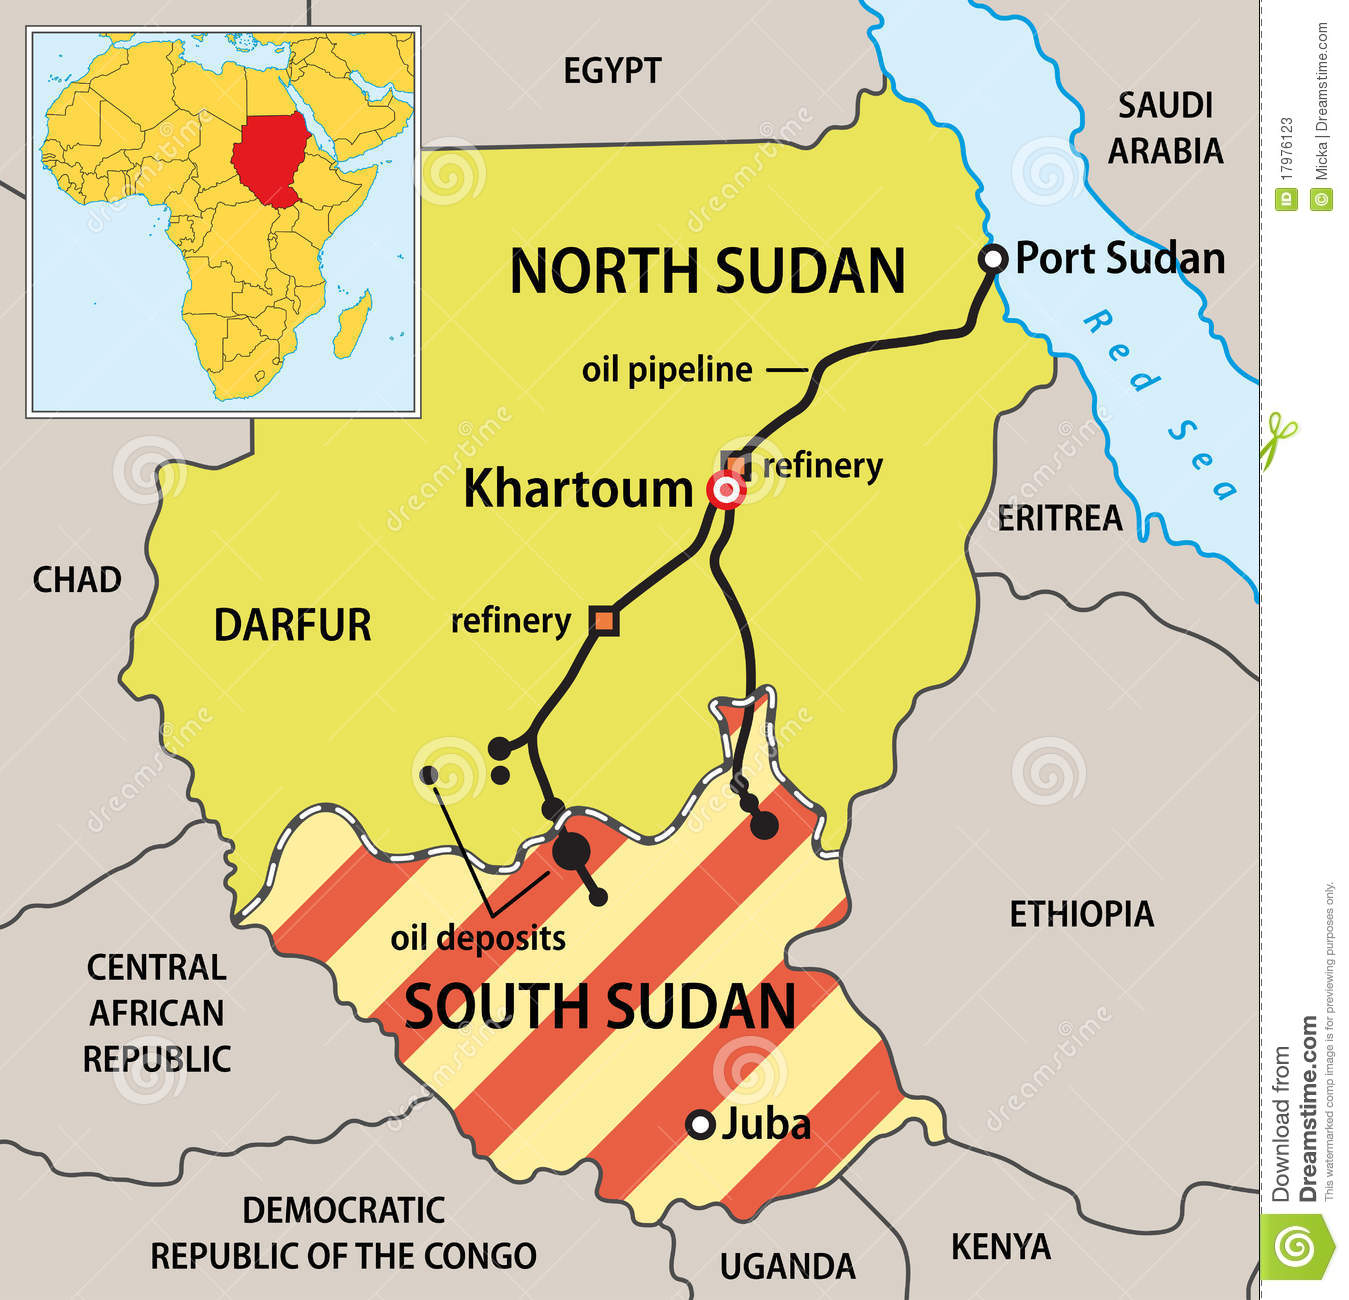 http://www.dreamstime.com/stock-photos-sudan-political-map-image17976123